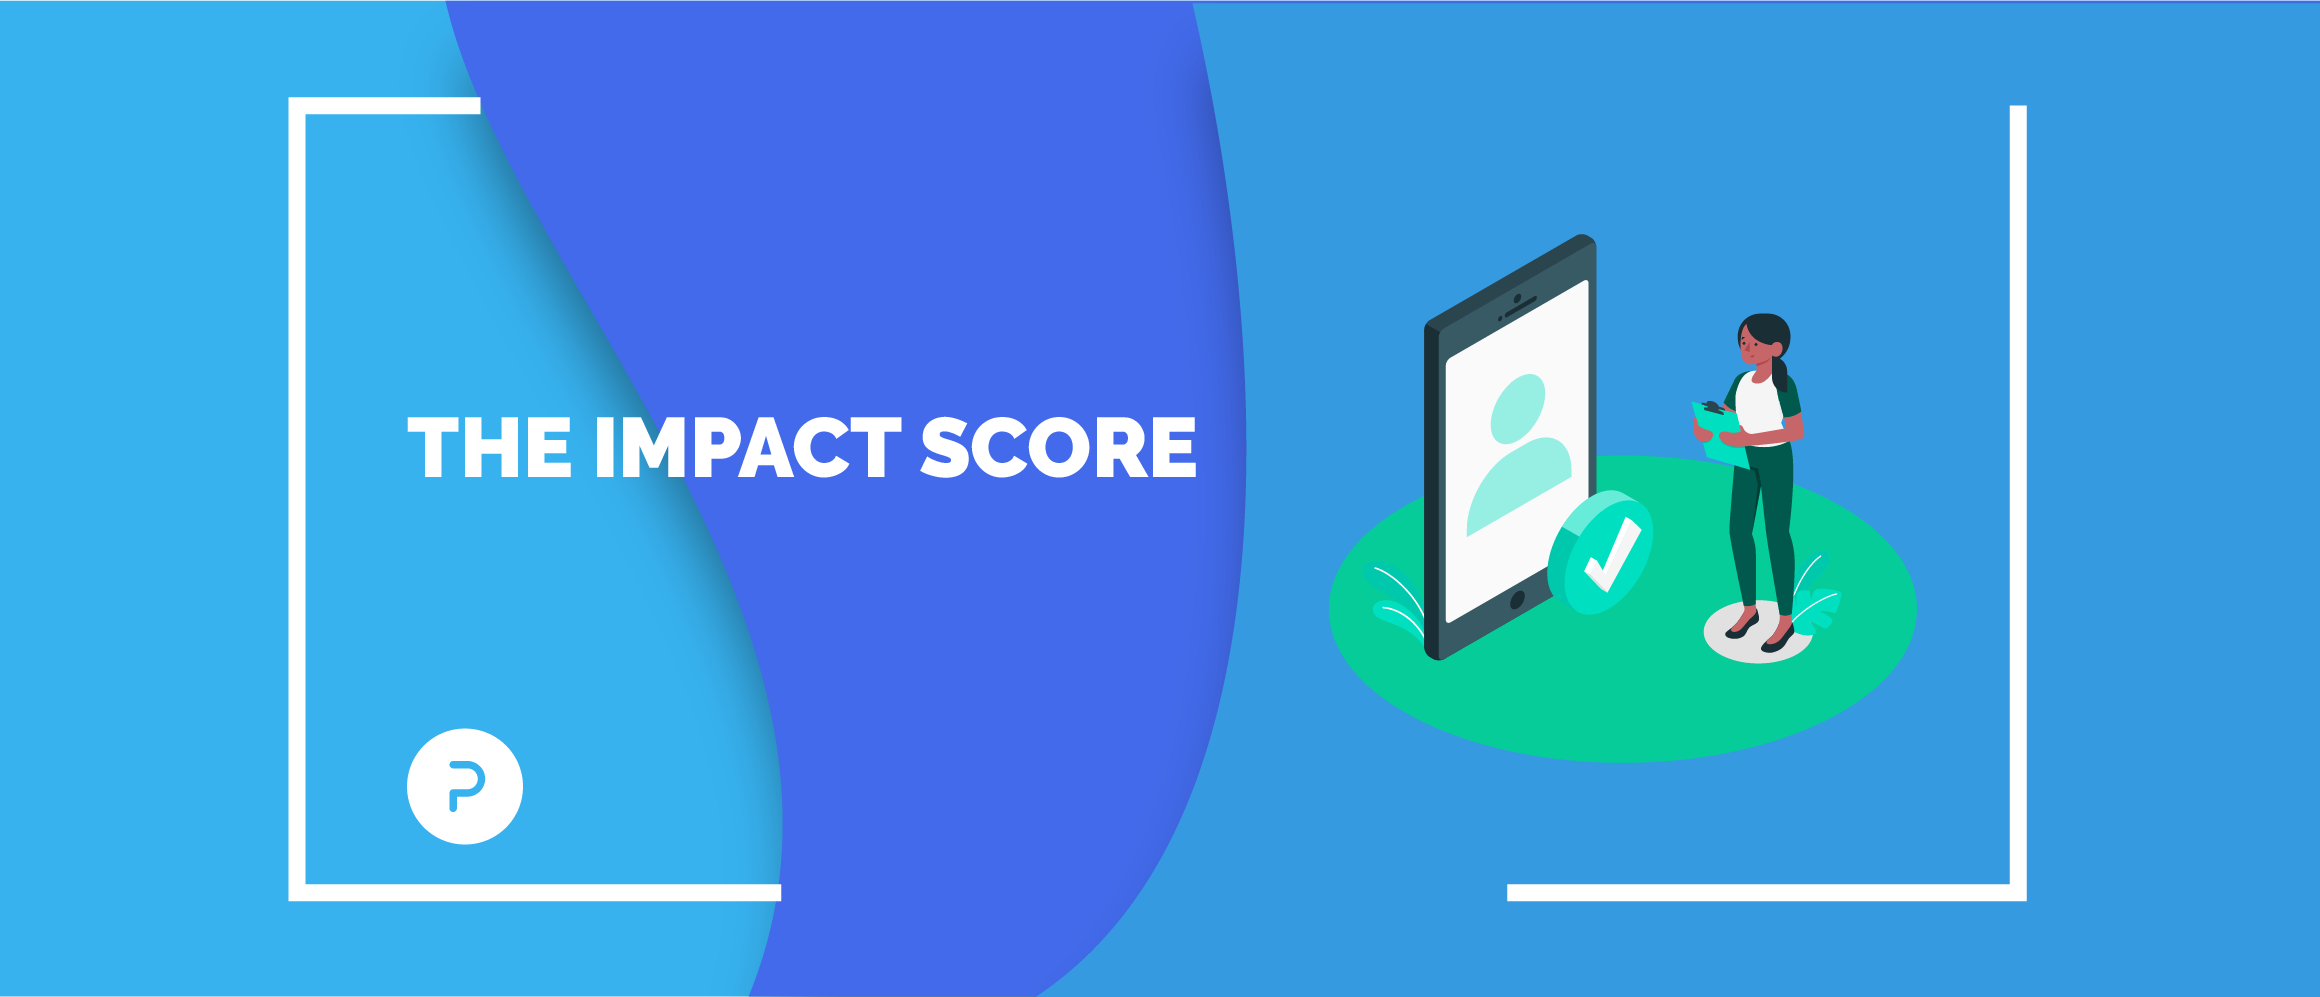 The Impact Score: A social, ecological & business transformation tool